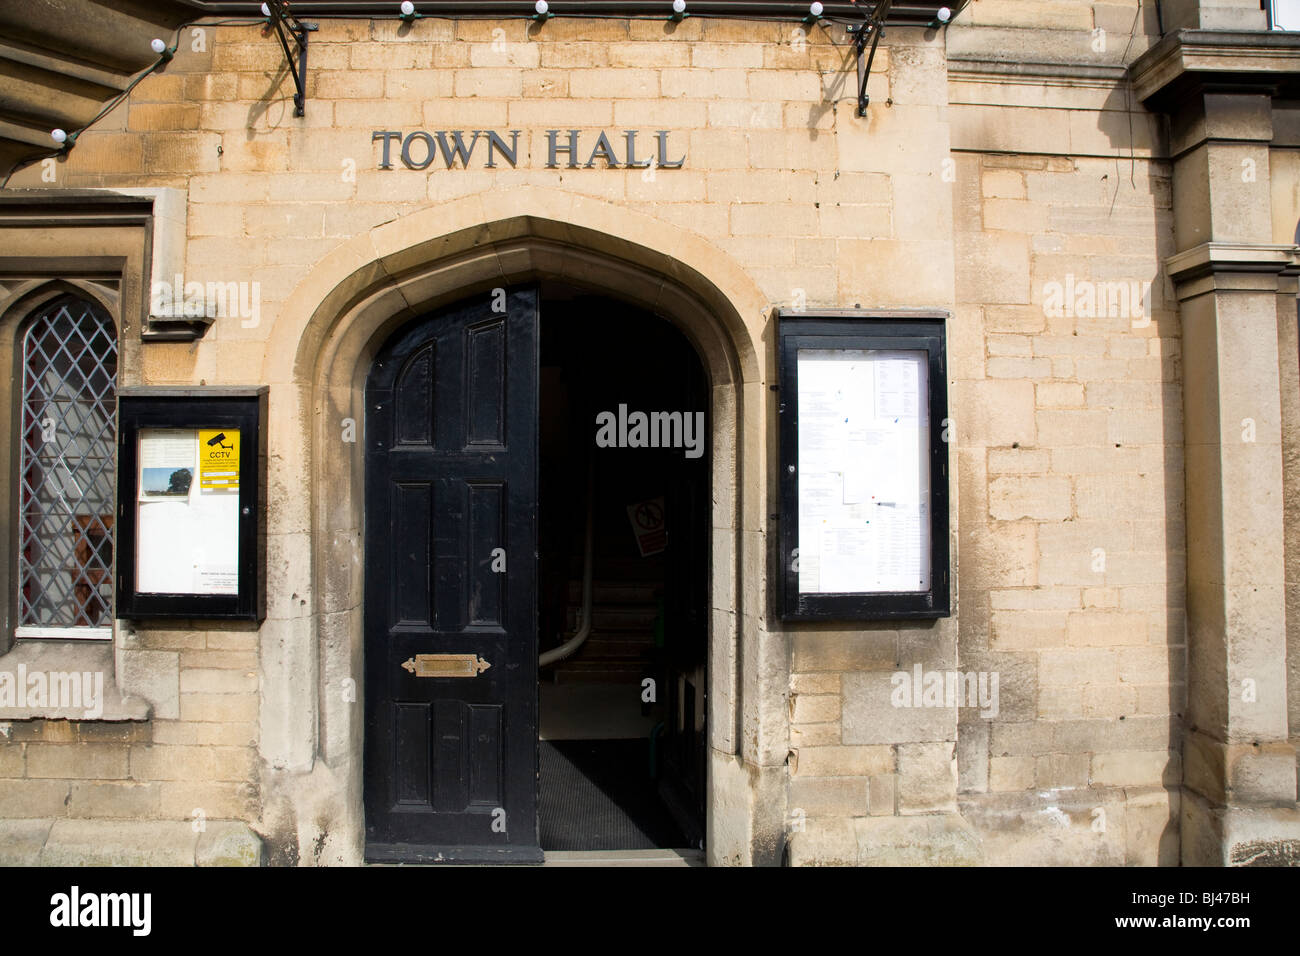 Town Hall in Market Deeping Lincs & Town Hall in Market Deeping Lincs Stock Photo: 28367797 - Alamy